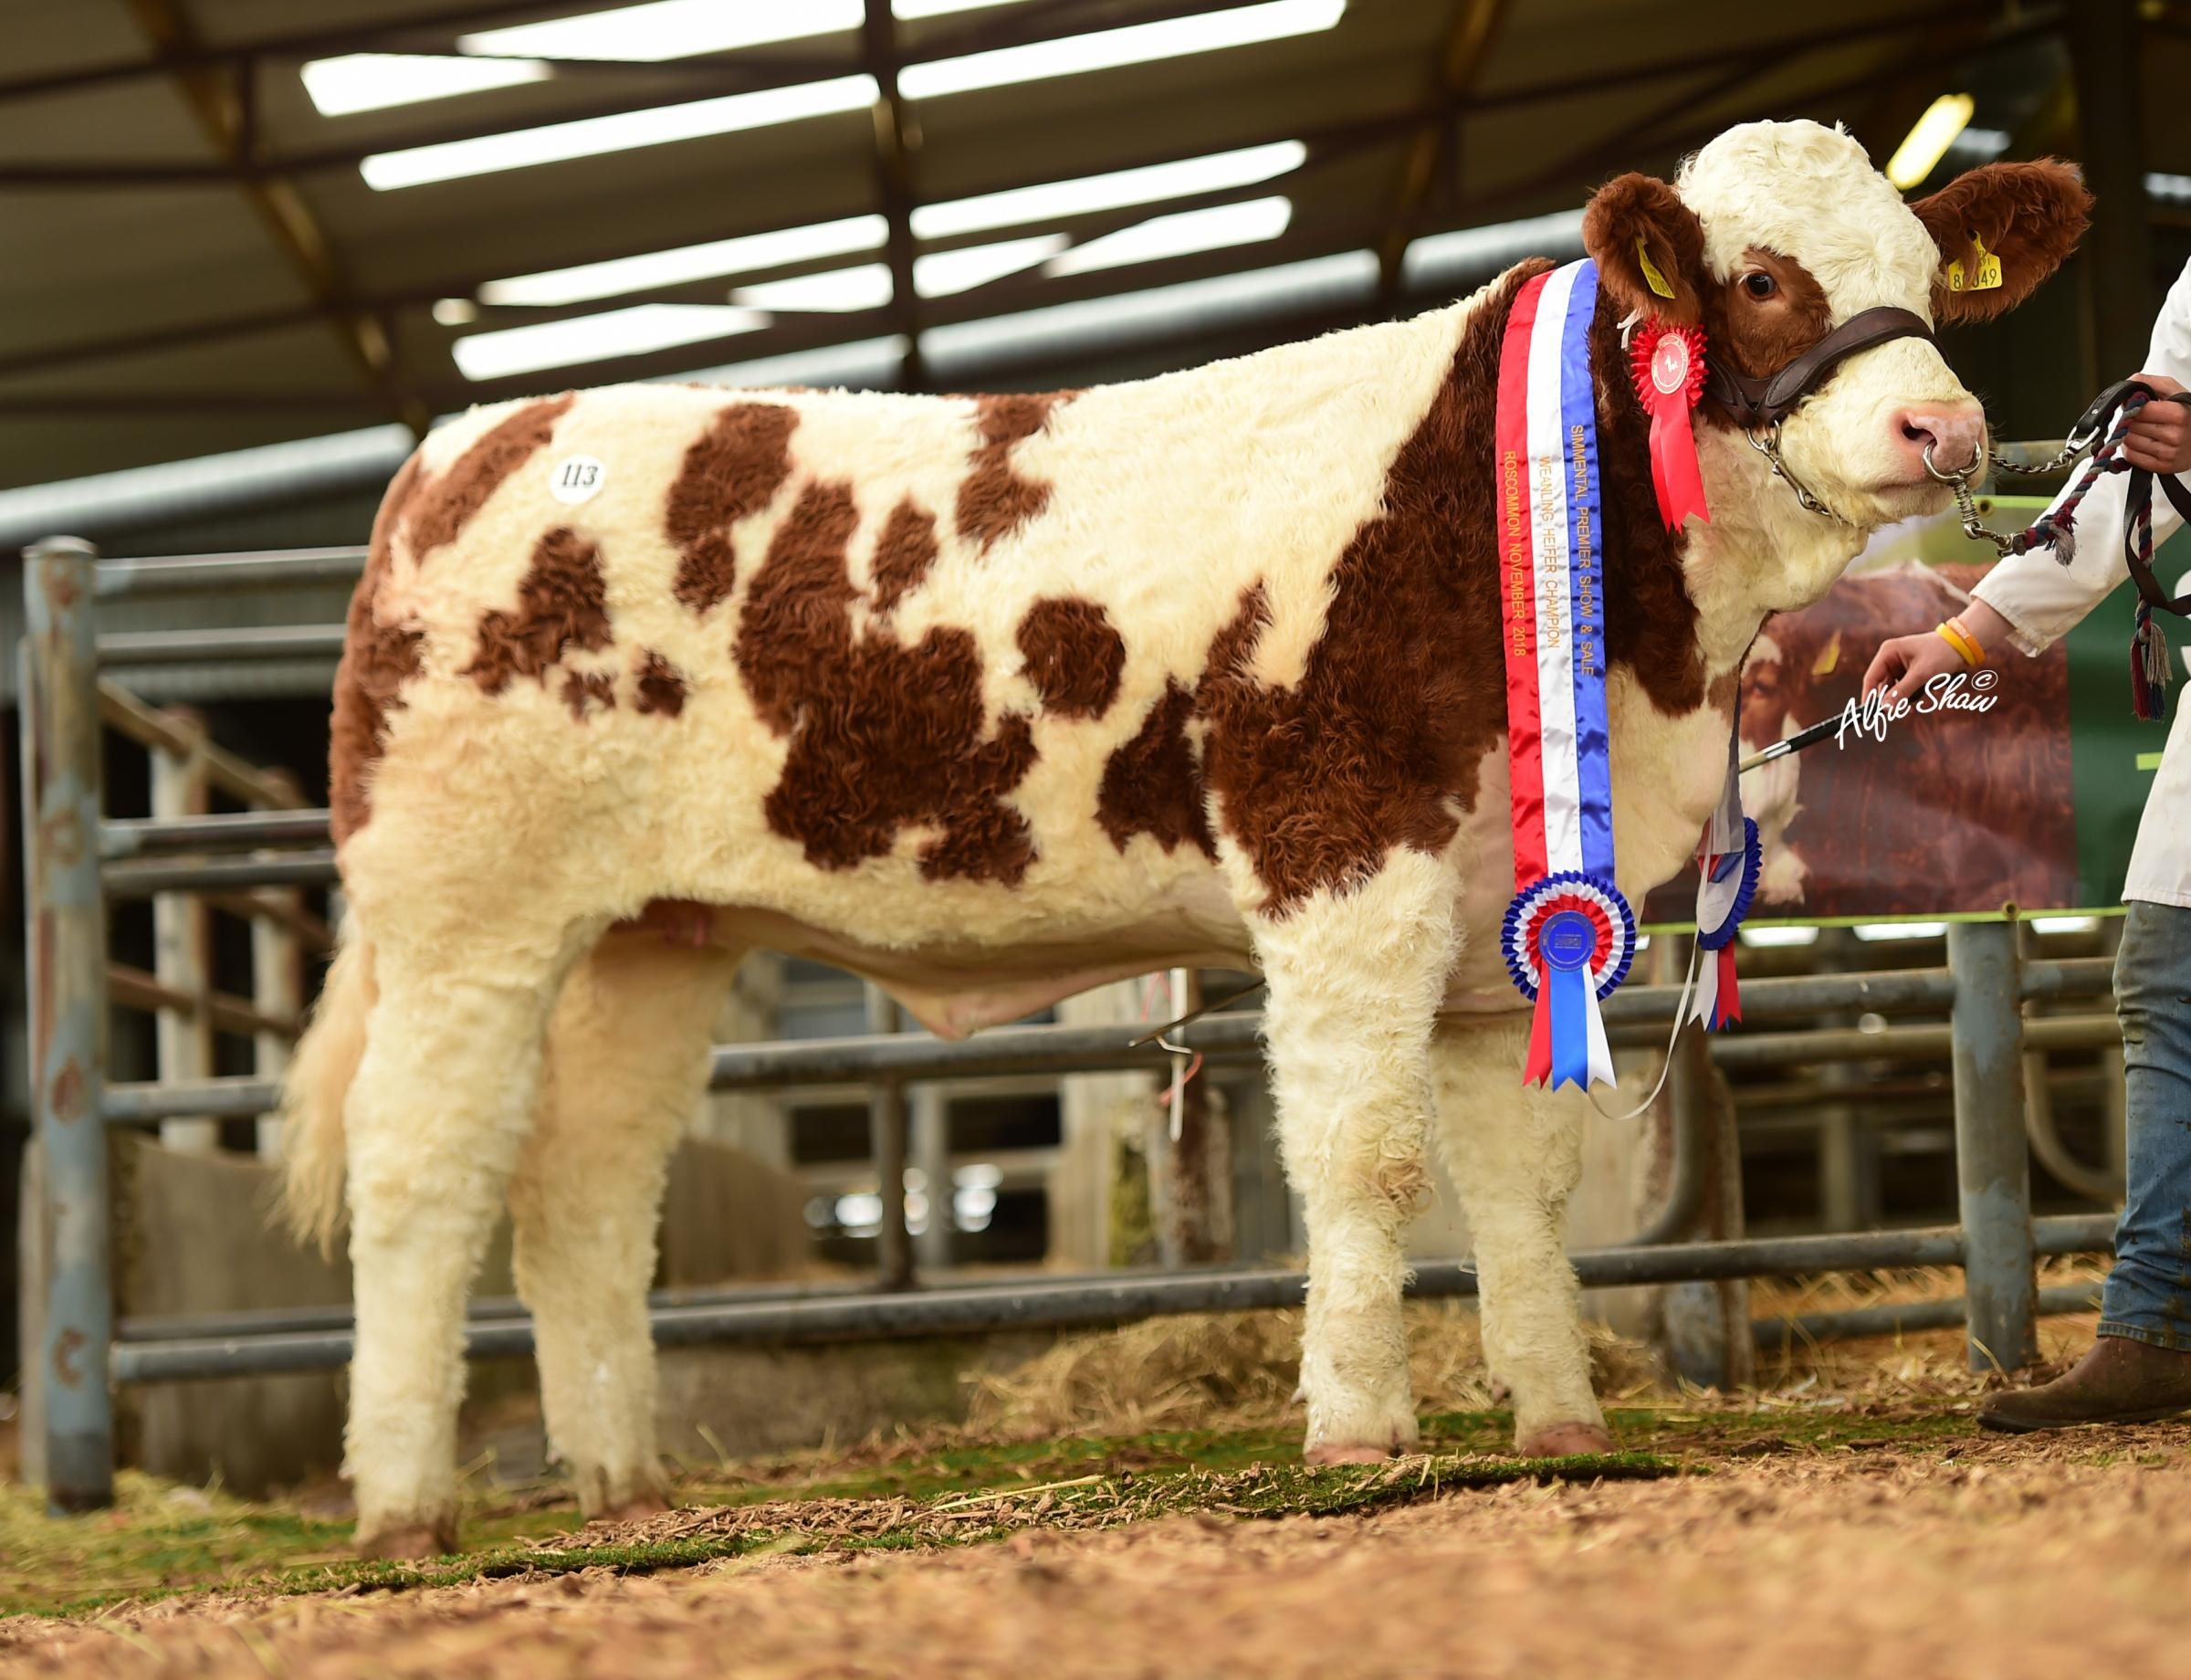 Lissadell Just The One was weaned heifer champion and topped the sale at €9100